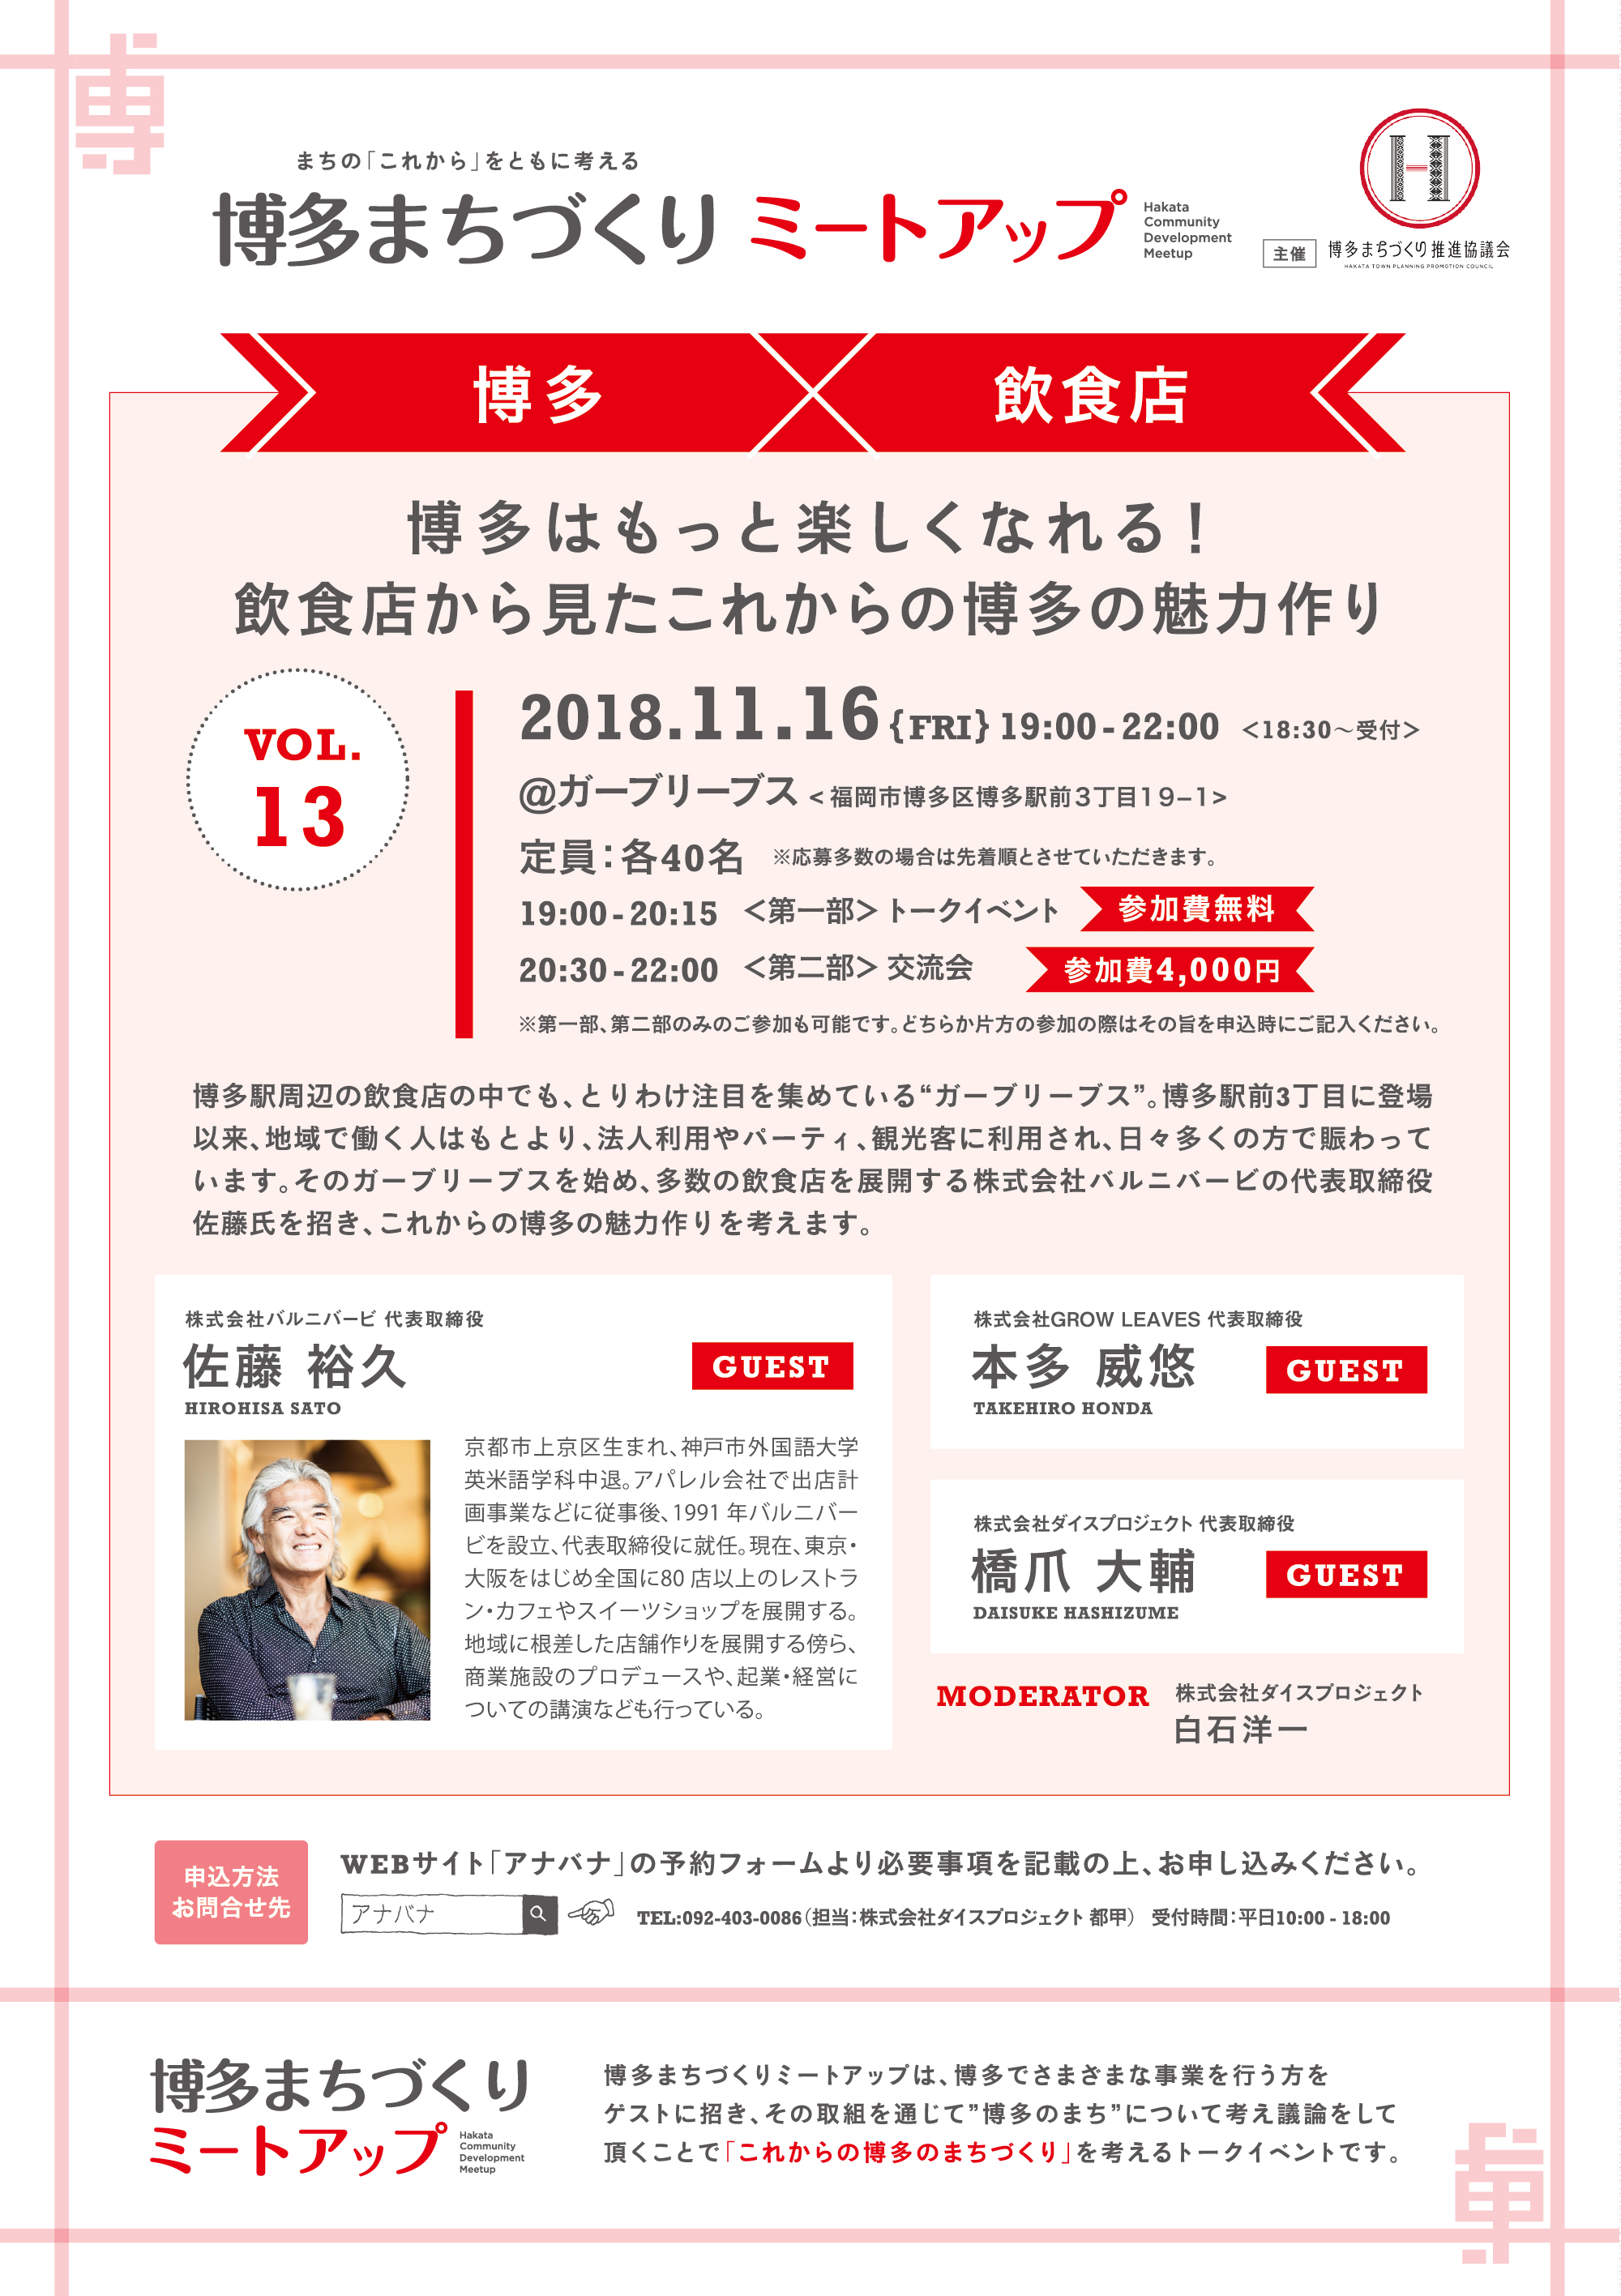 meetup_flyer_vol13